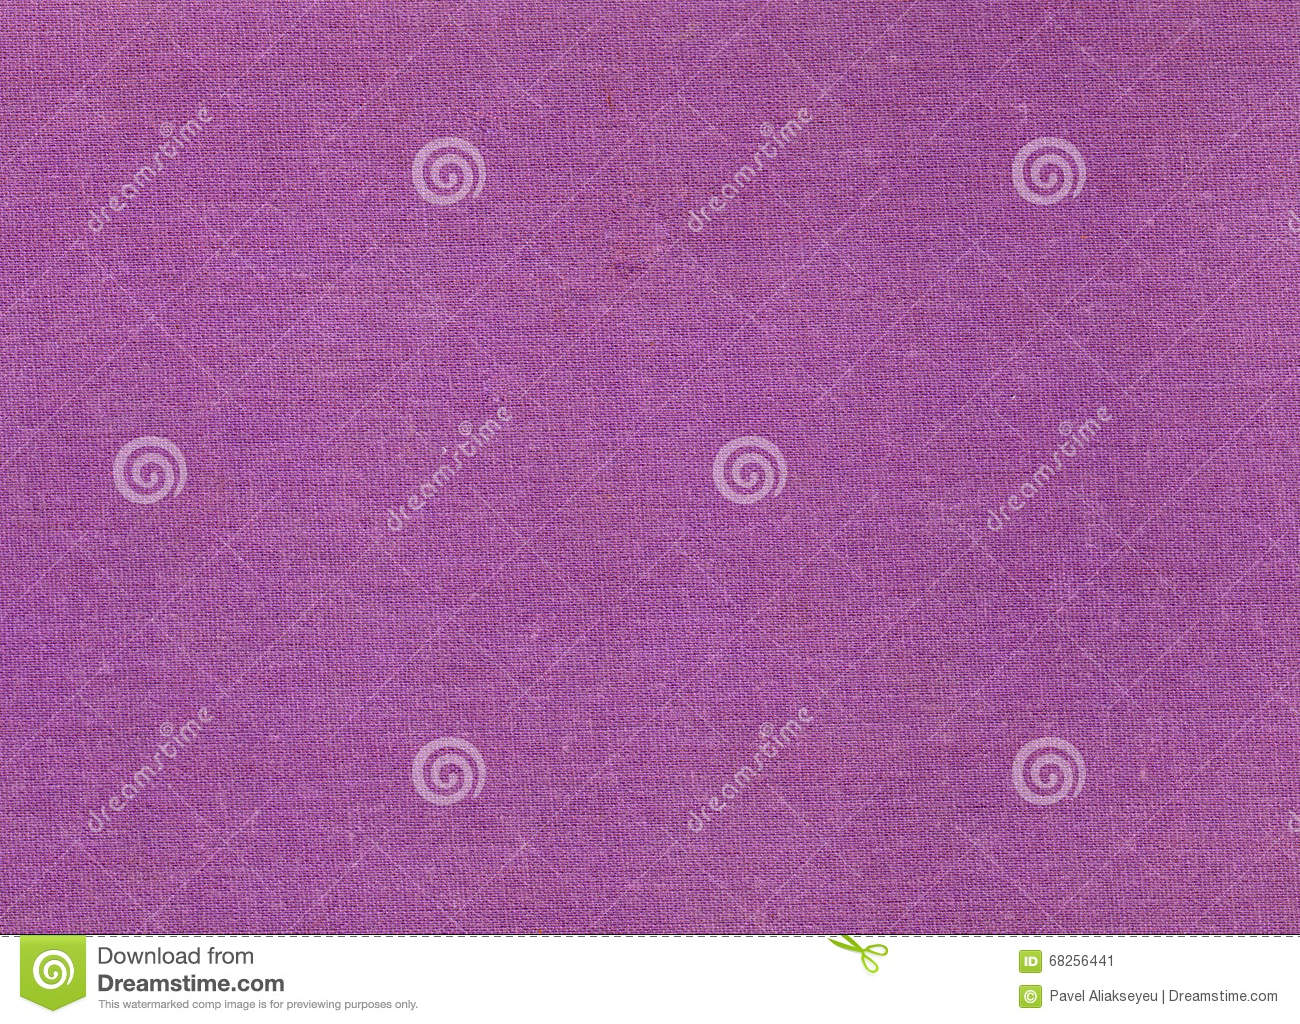 Photo Book Cover Material : Old violet fabric book cover texture stock image